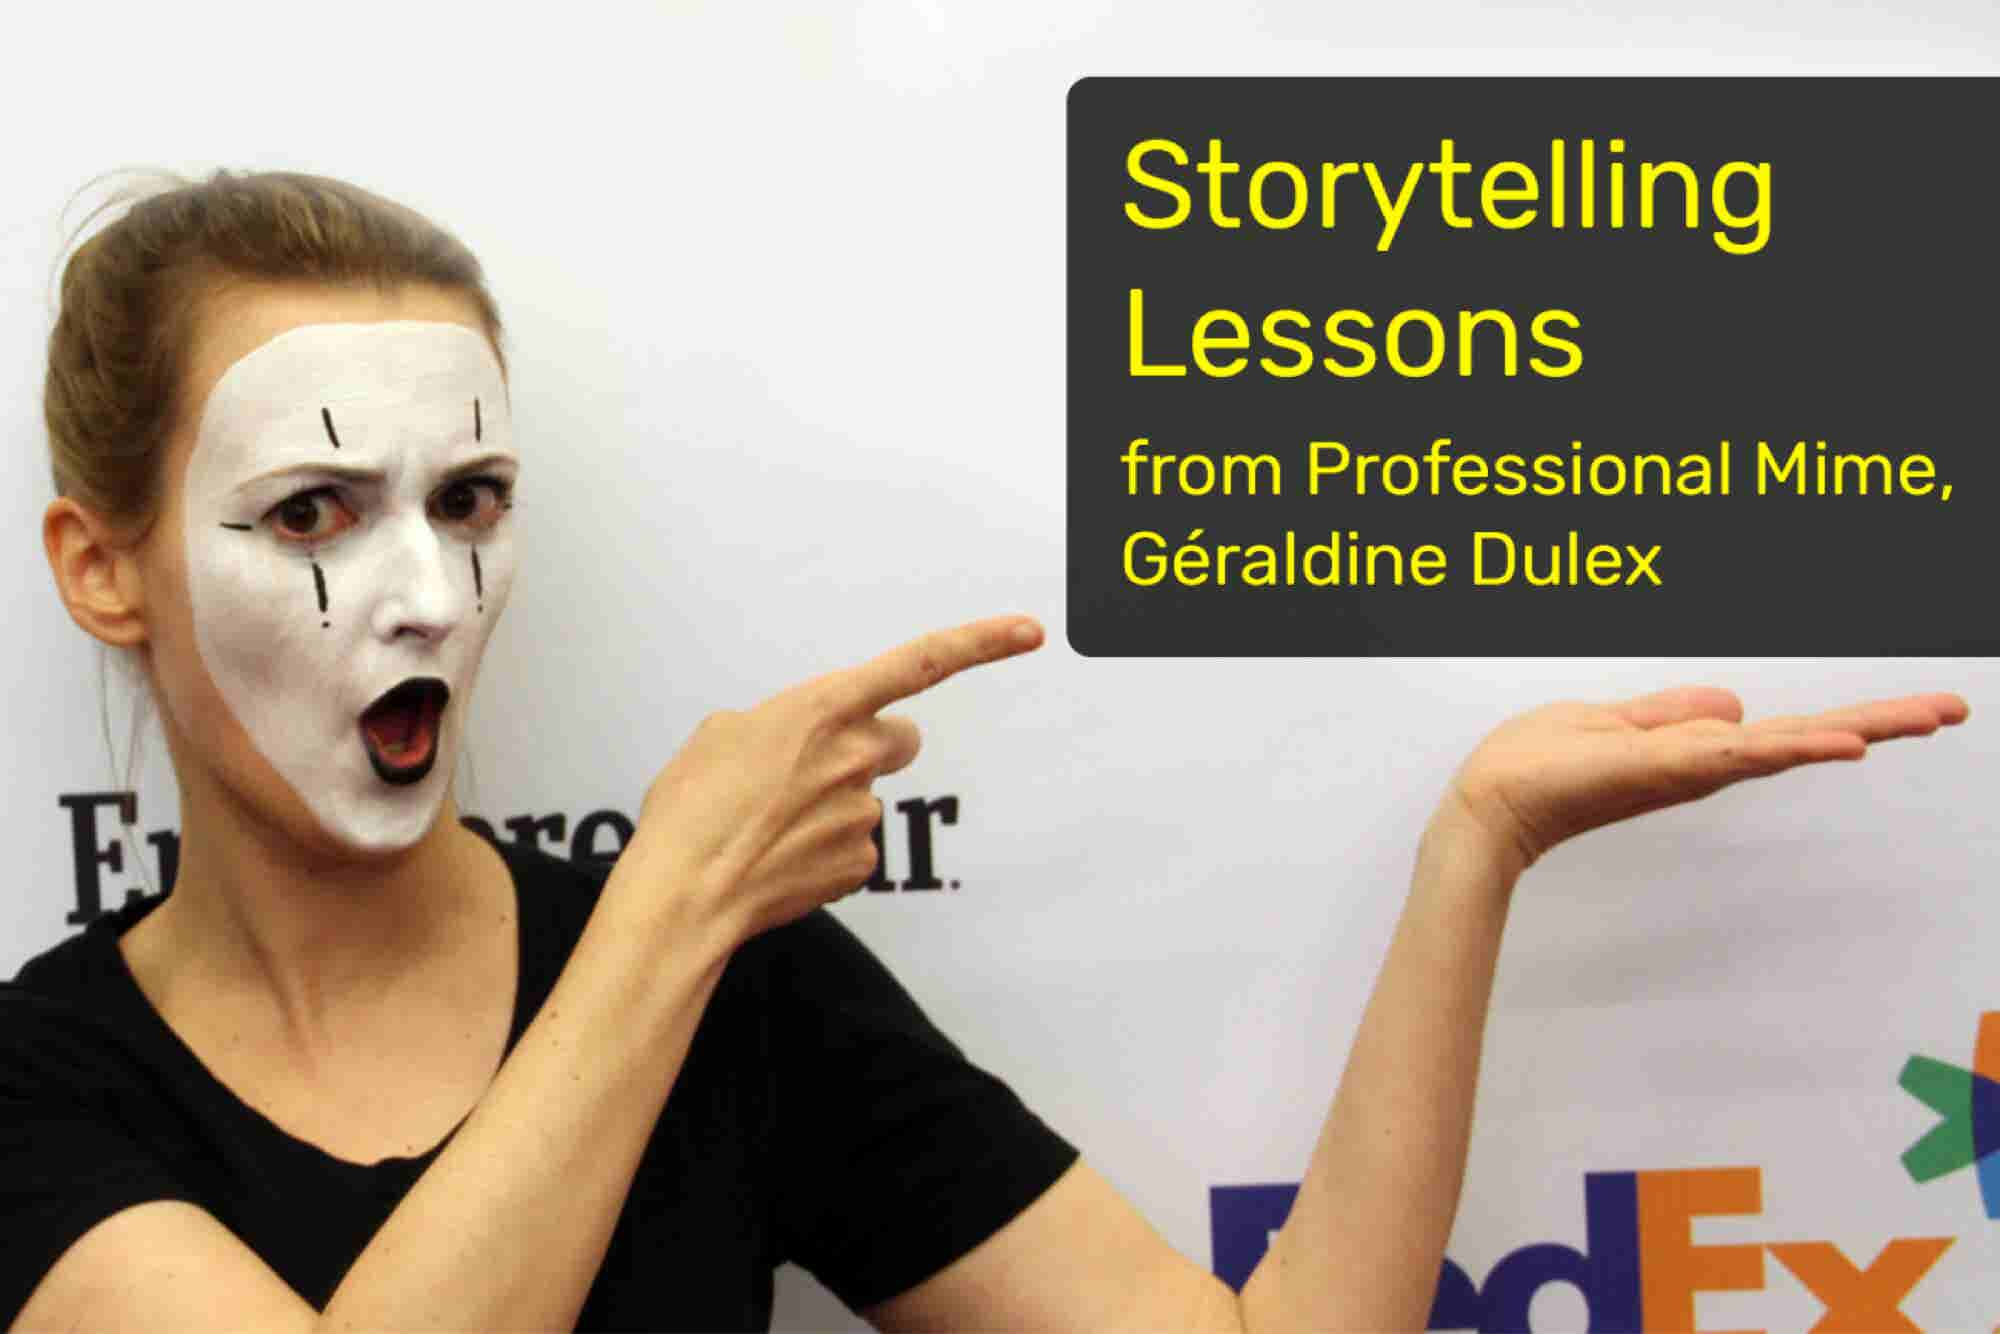 Storytelling Lessons From a Professional Mime